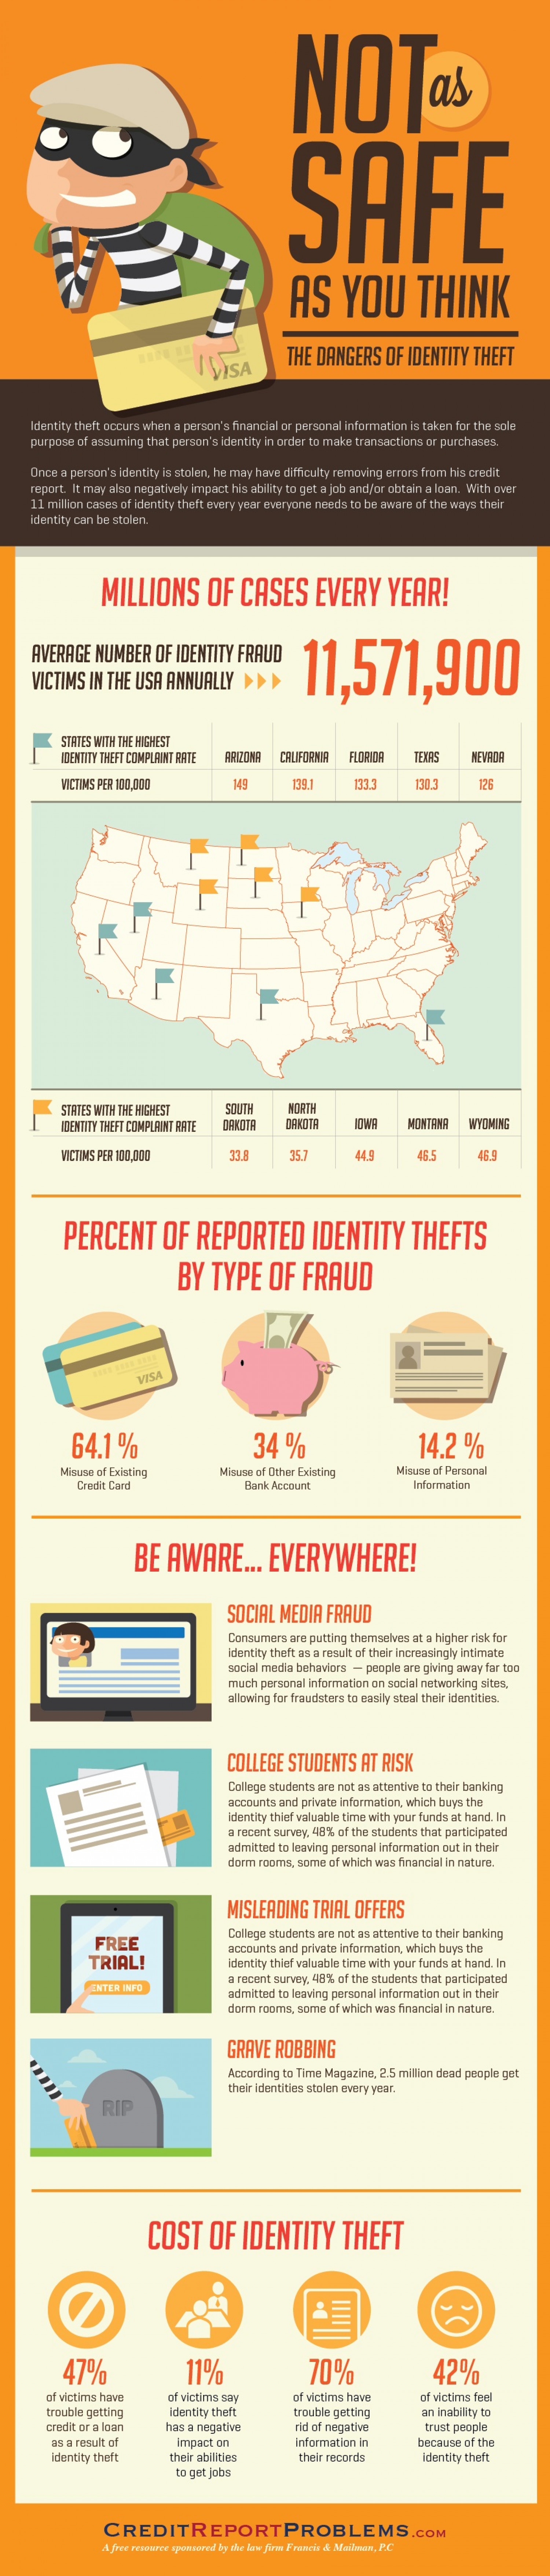 Not As Safe As You Think: The Dangers of Identity Theft Infographic